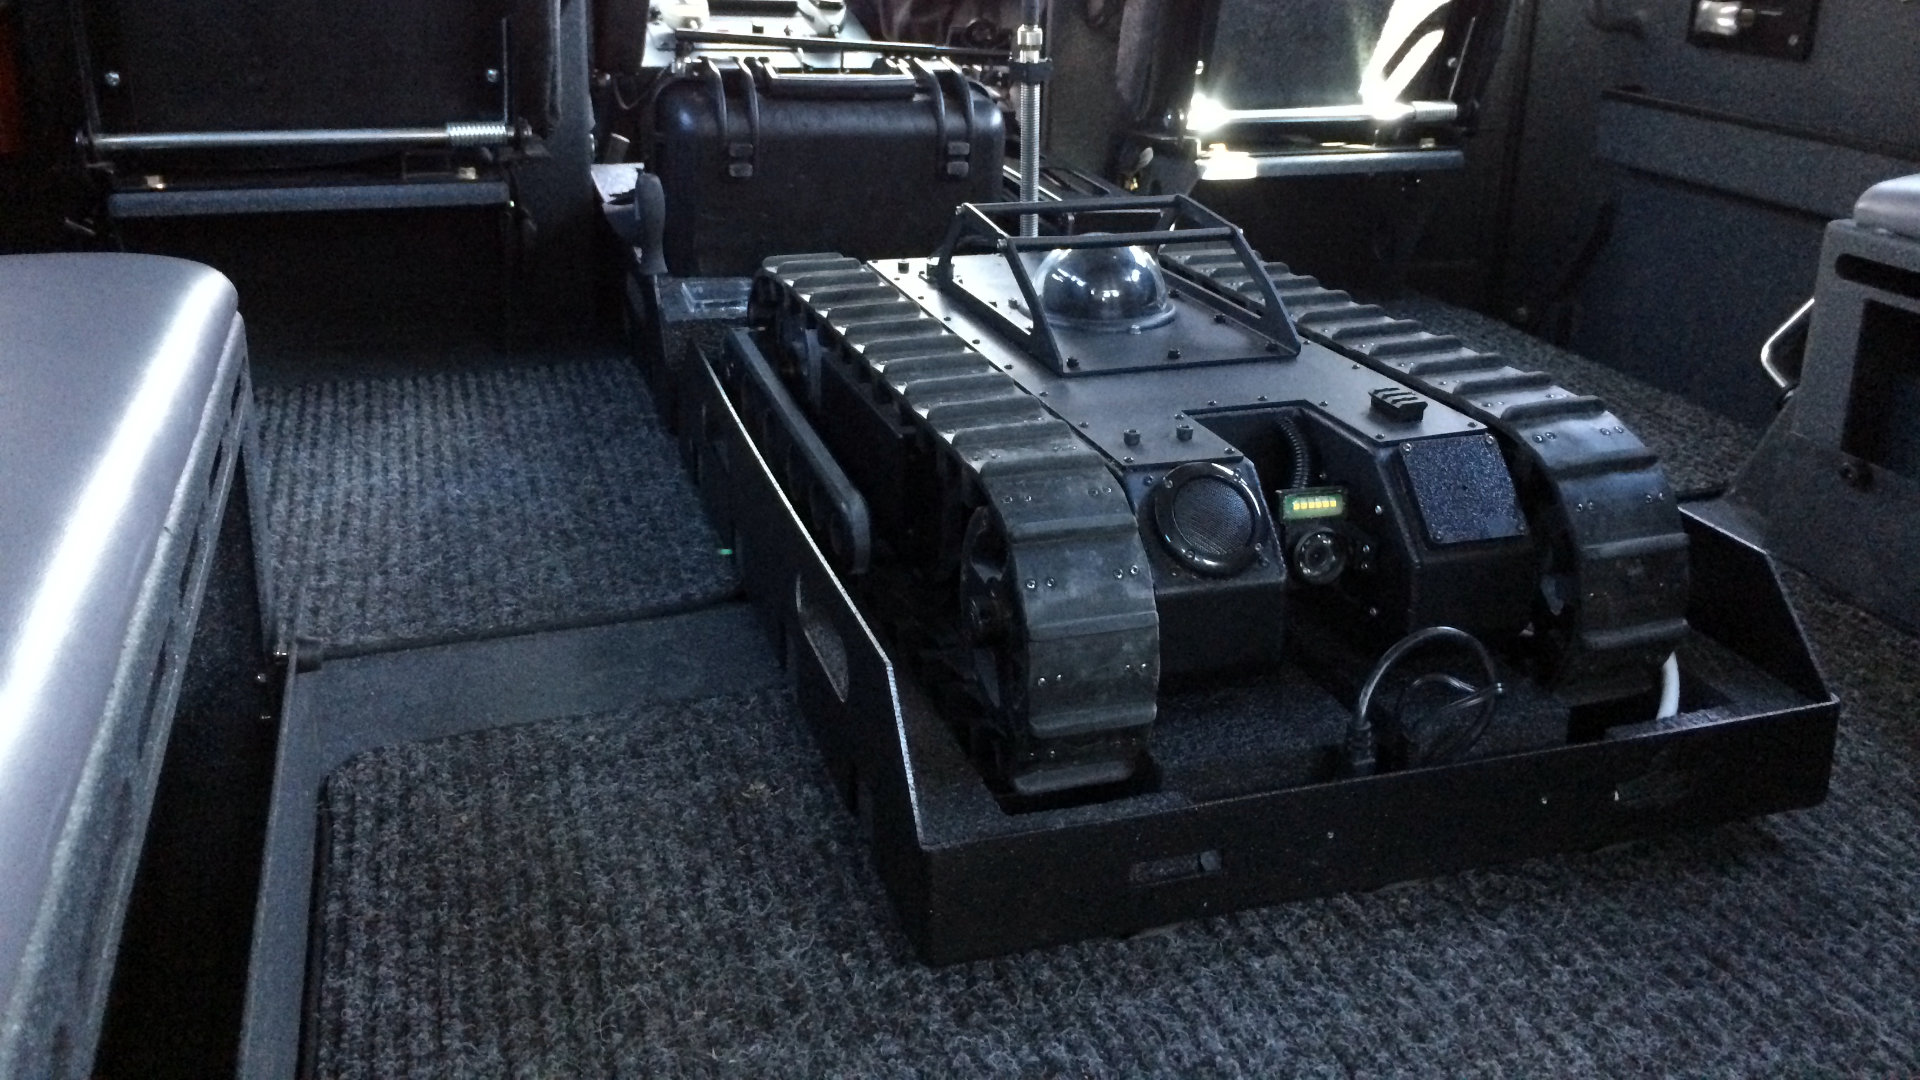 Compact tactical robot in SWAT vehicle